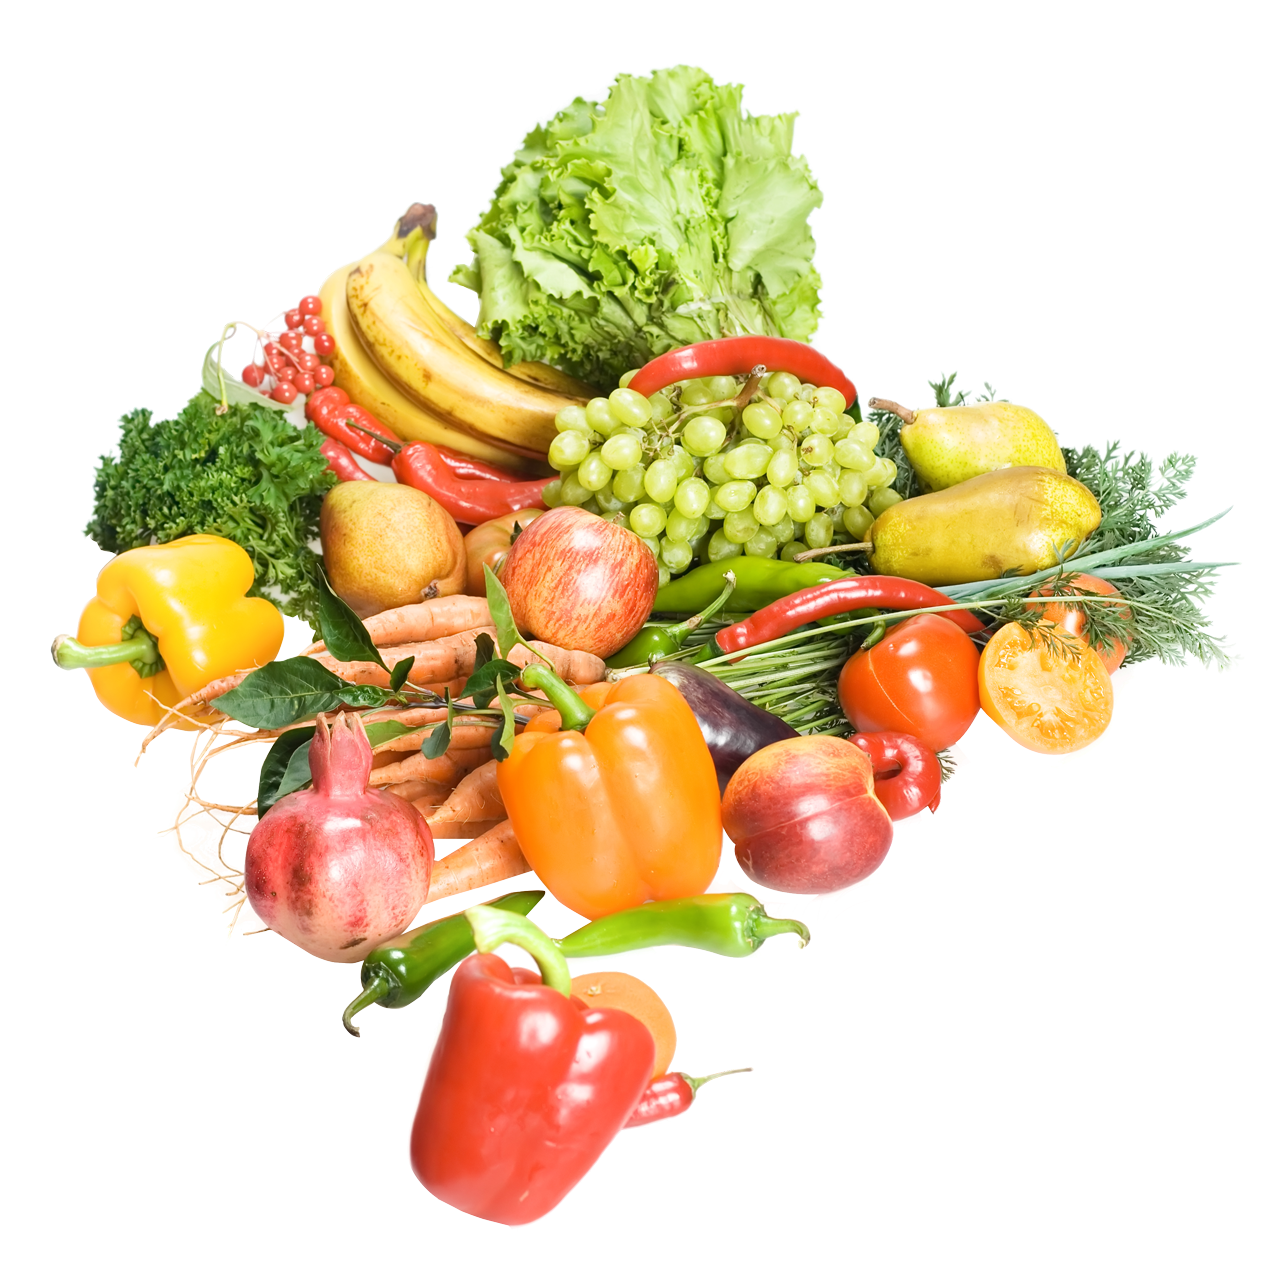 Vegetables & fruits png. And image purepng free